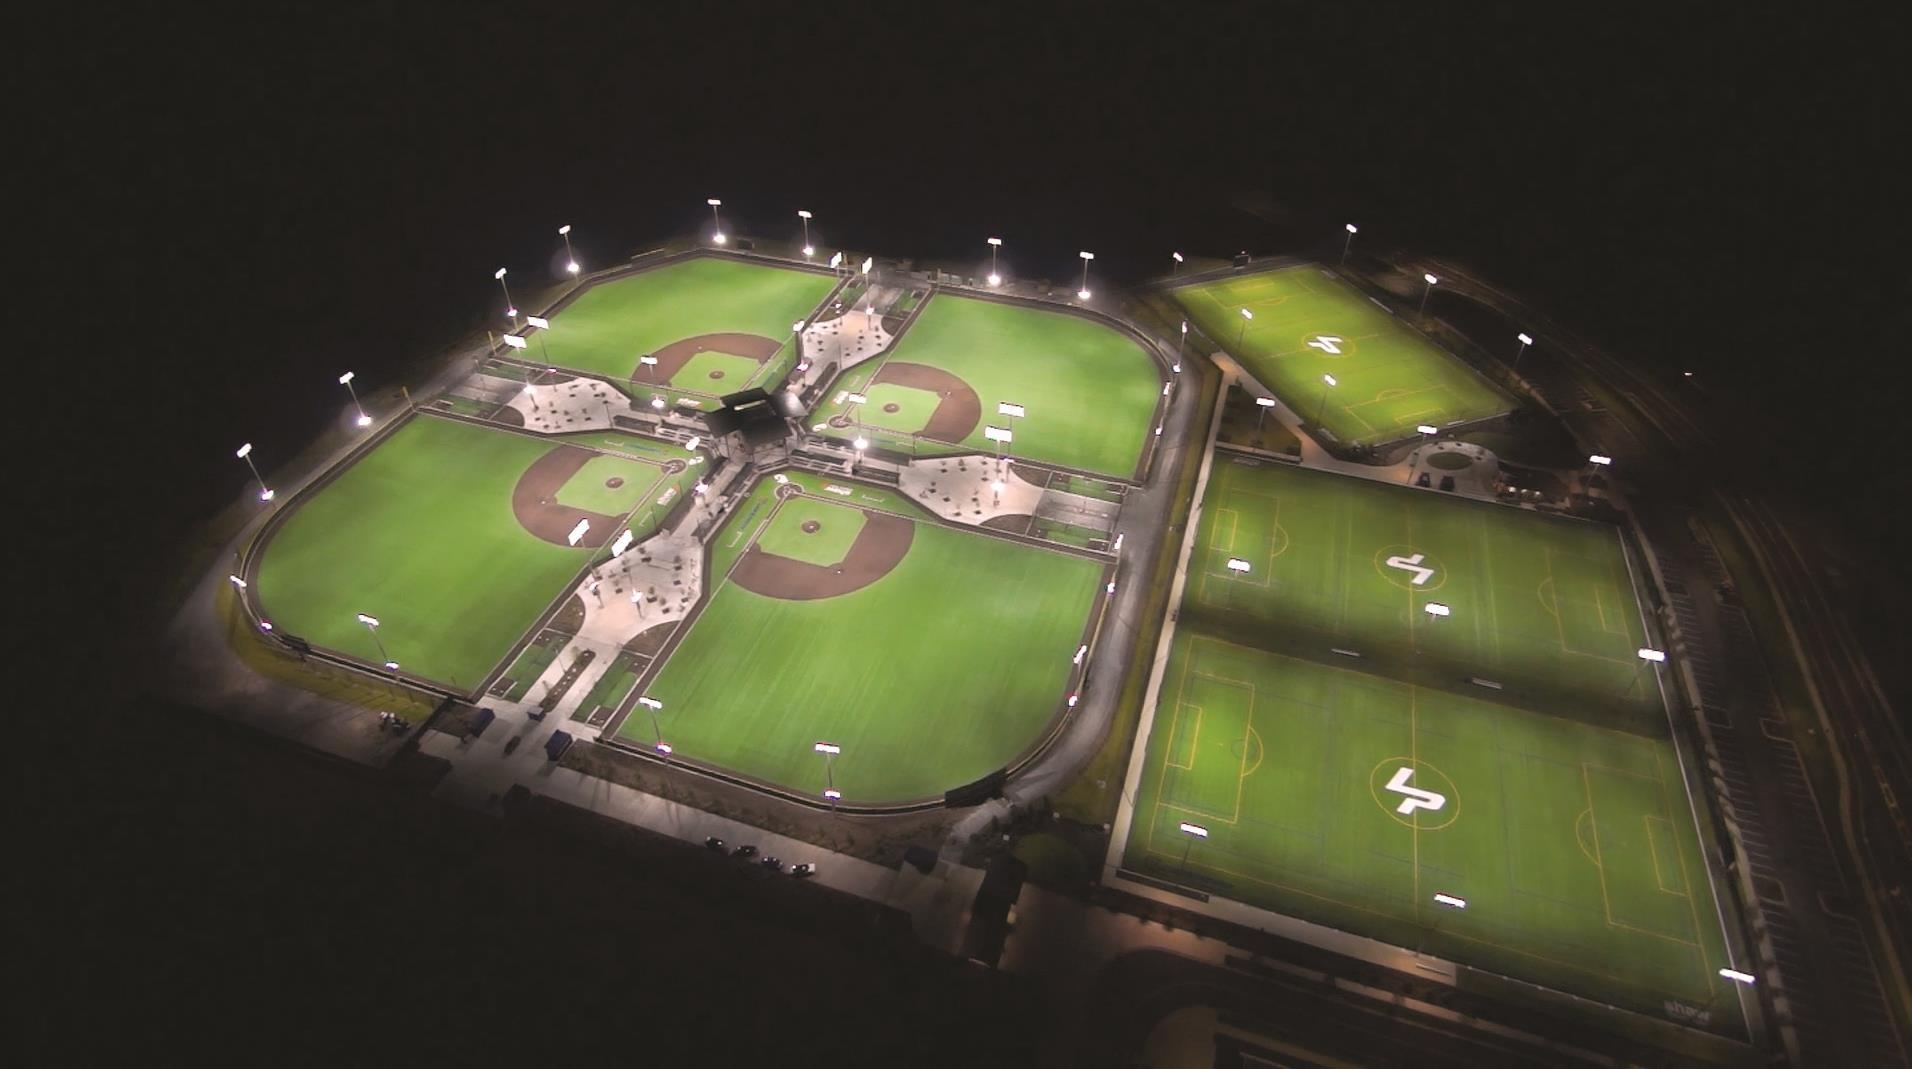 LakePoint Sporting Community: The Future of Sports Event